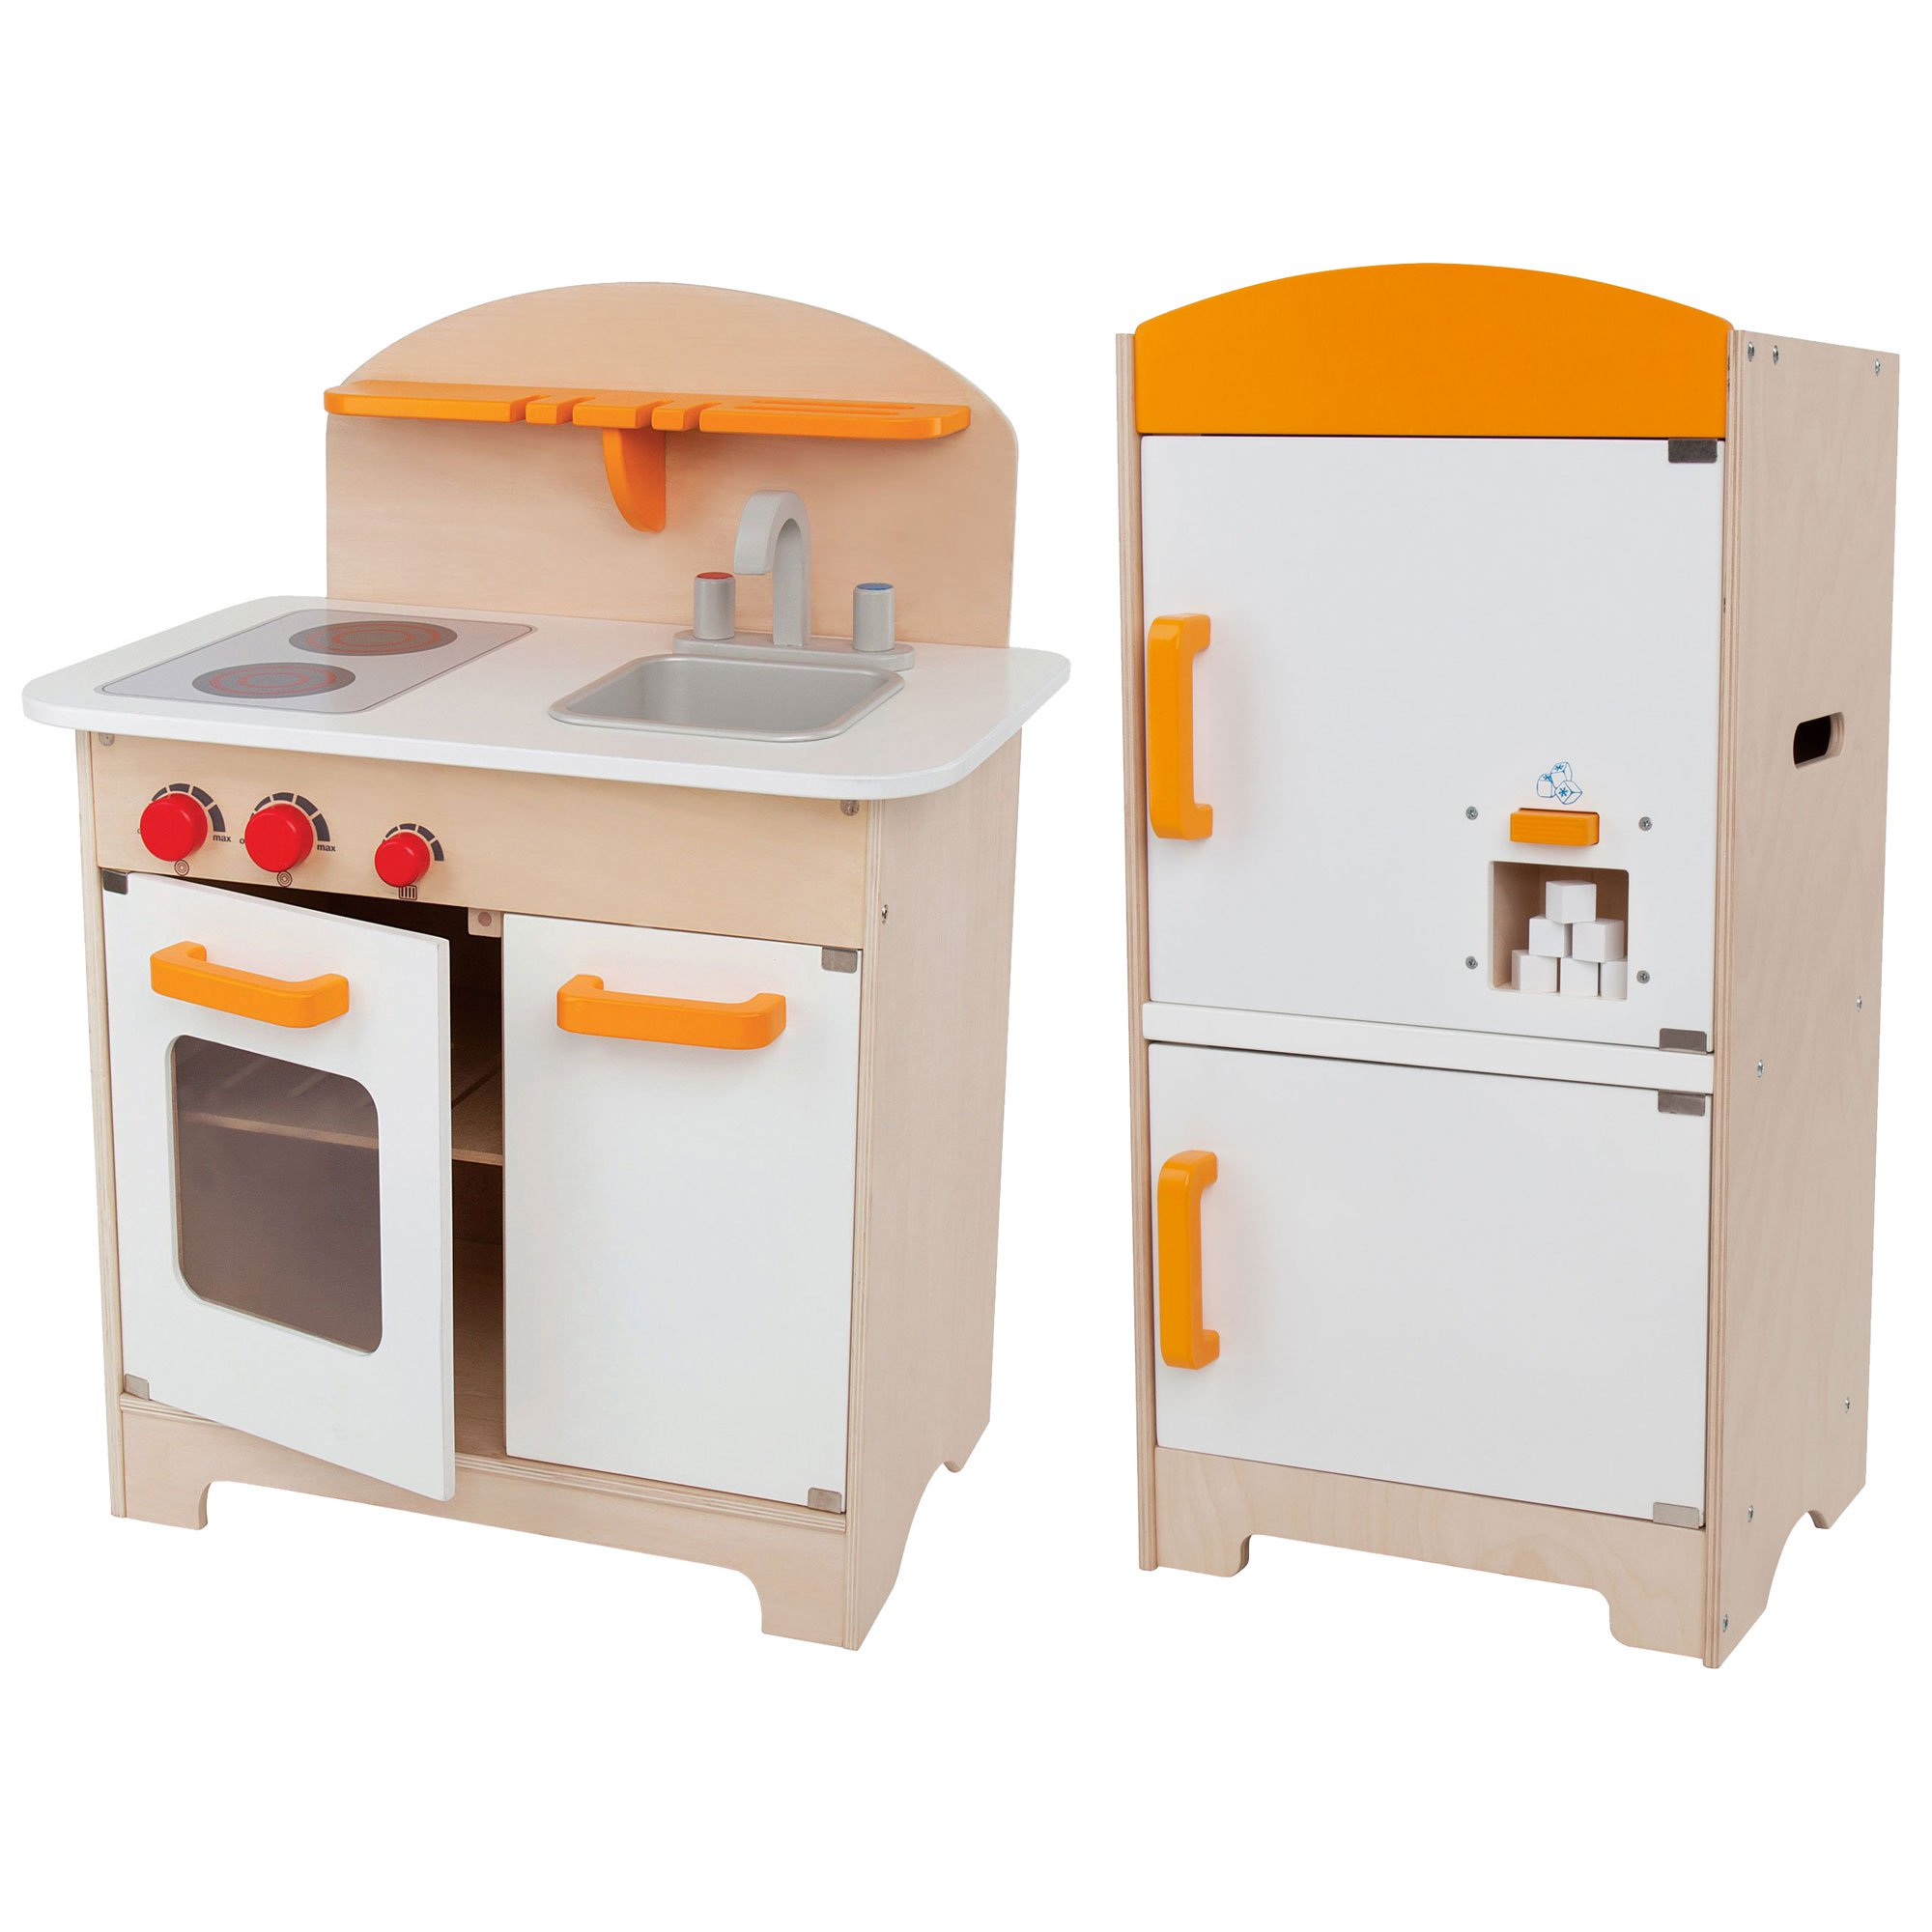 Hape Gourmet Kitchen Toddler & Kids Wood Play Pretend Kitchen and Fridge Playset